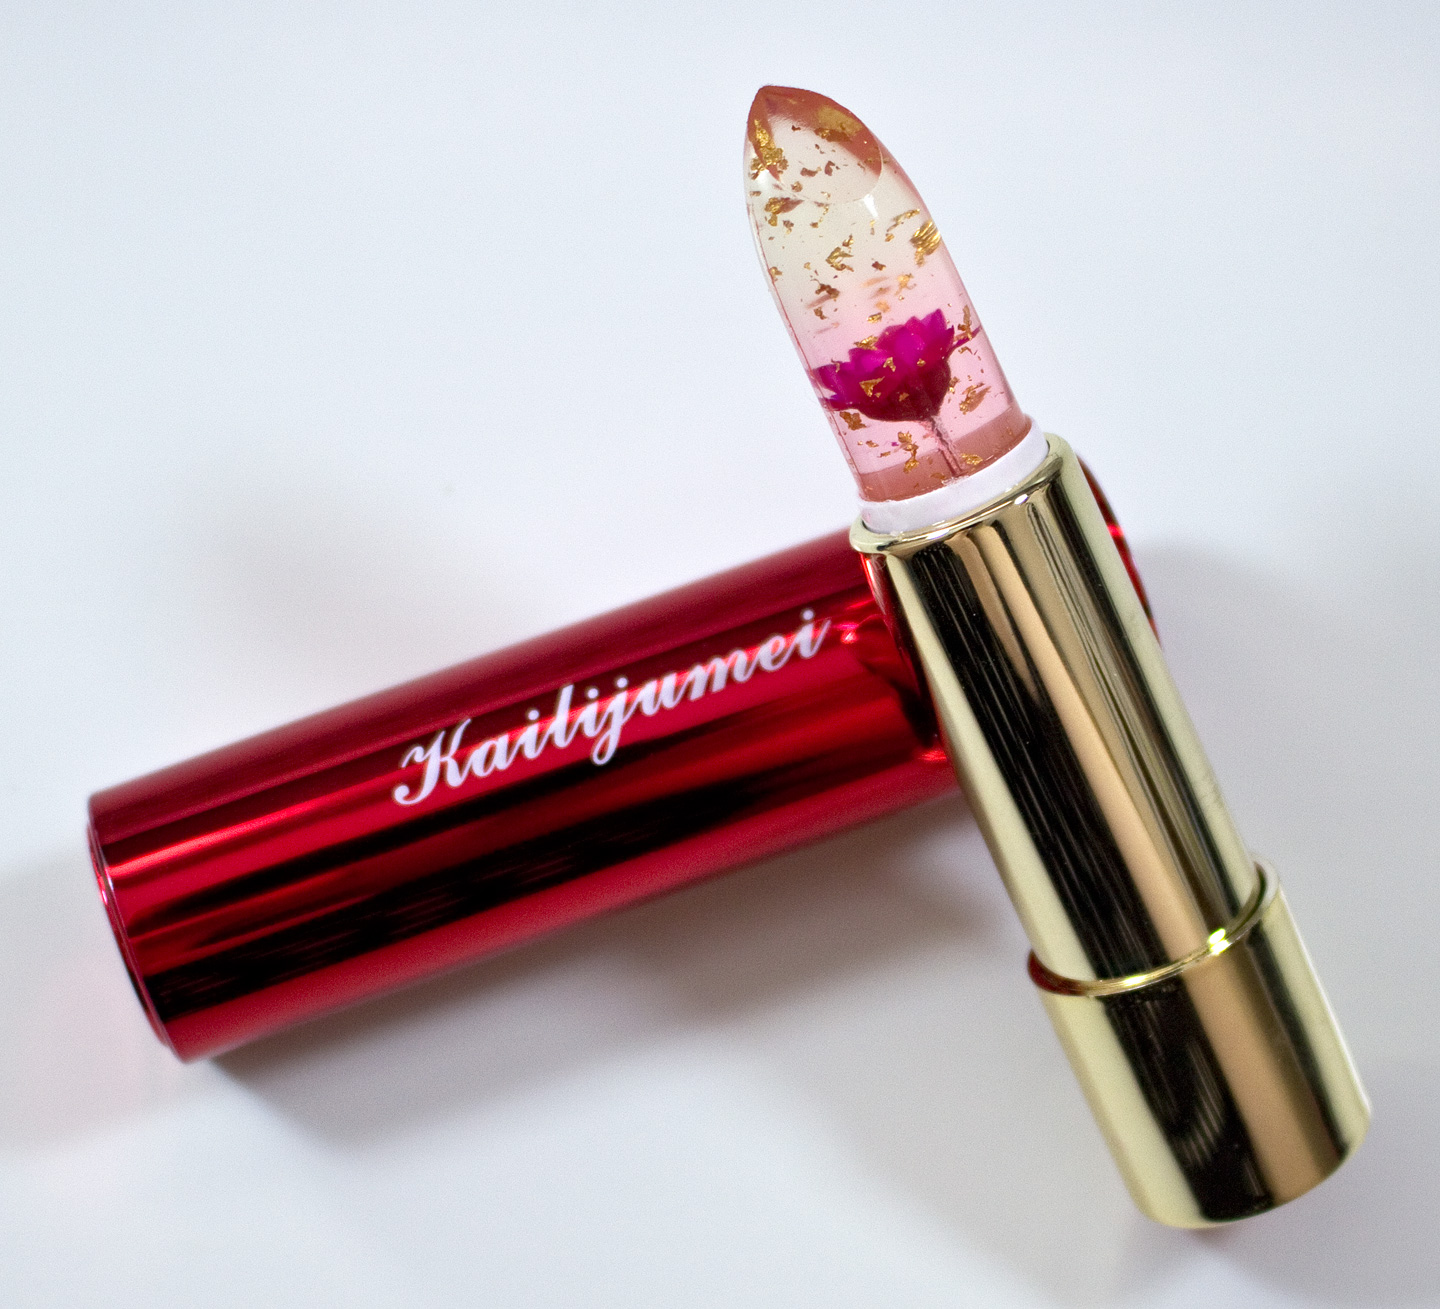 WARPAINT and Unicorns Kailijumei Flower Jelly Lipstick in Flame Red with Mi